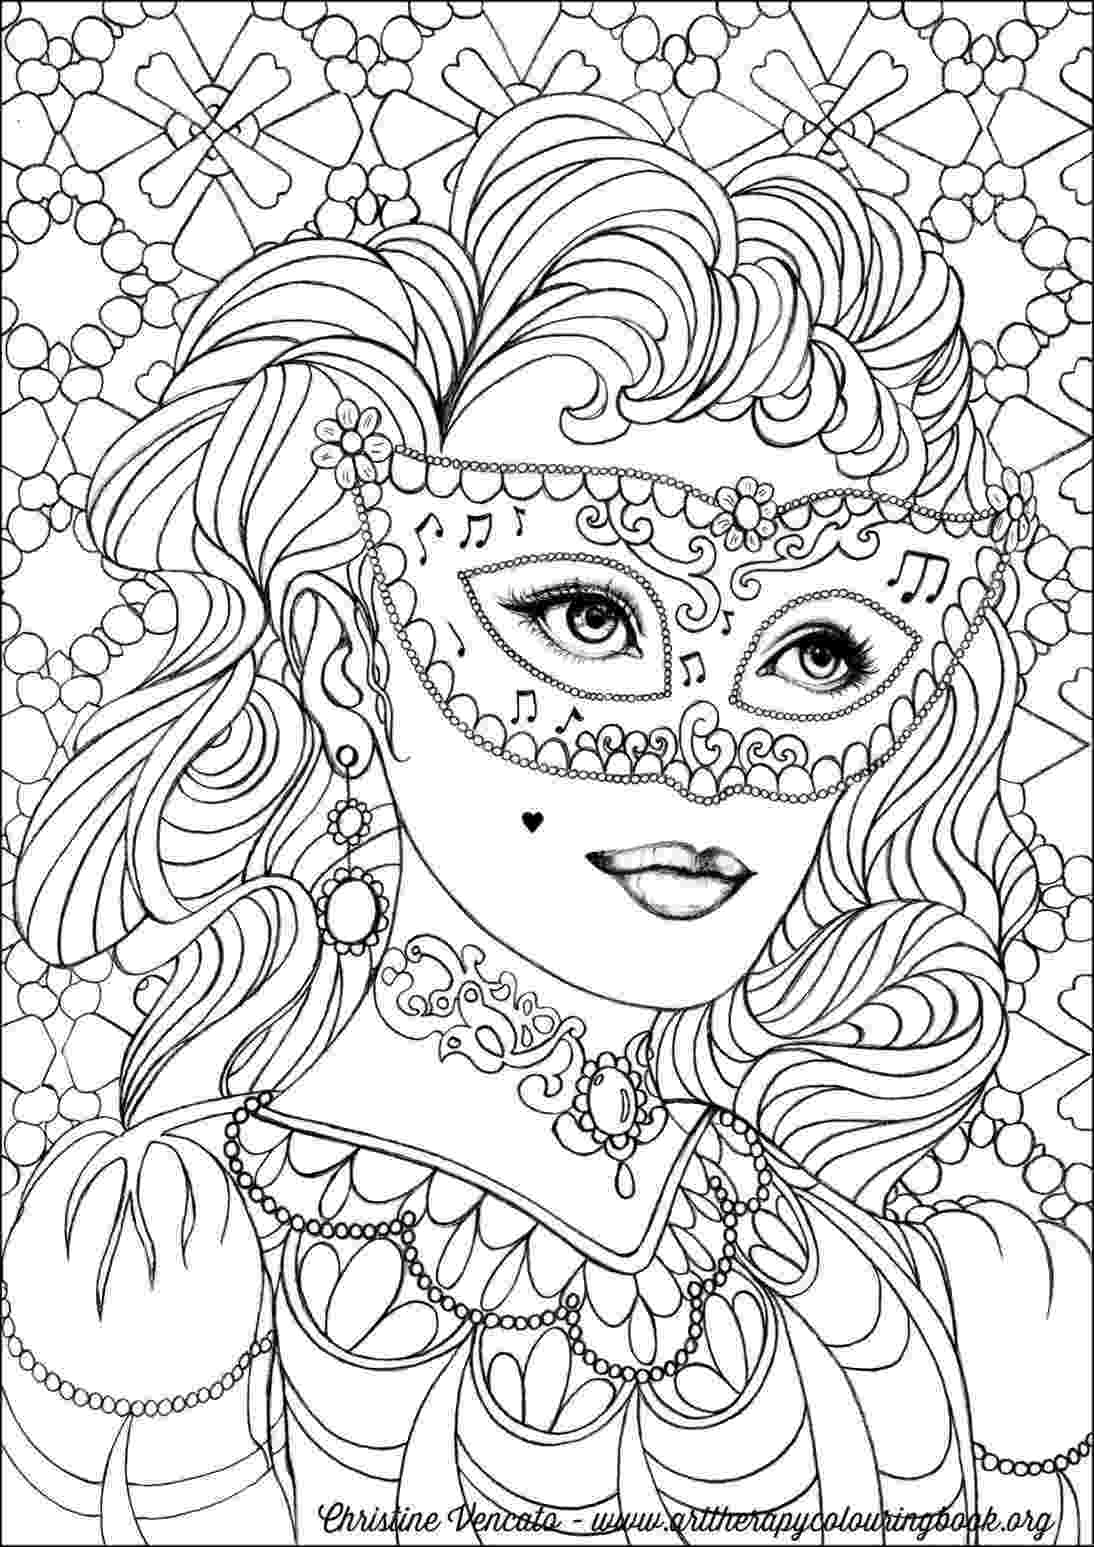 free coloring pages printable for adults 21 christmas printable coloring pages coloring pages adults free for printable